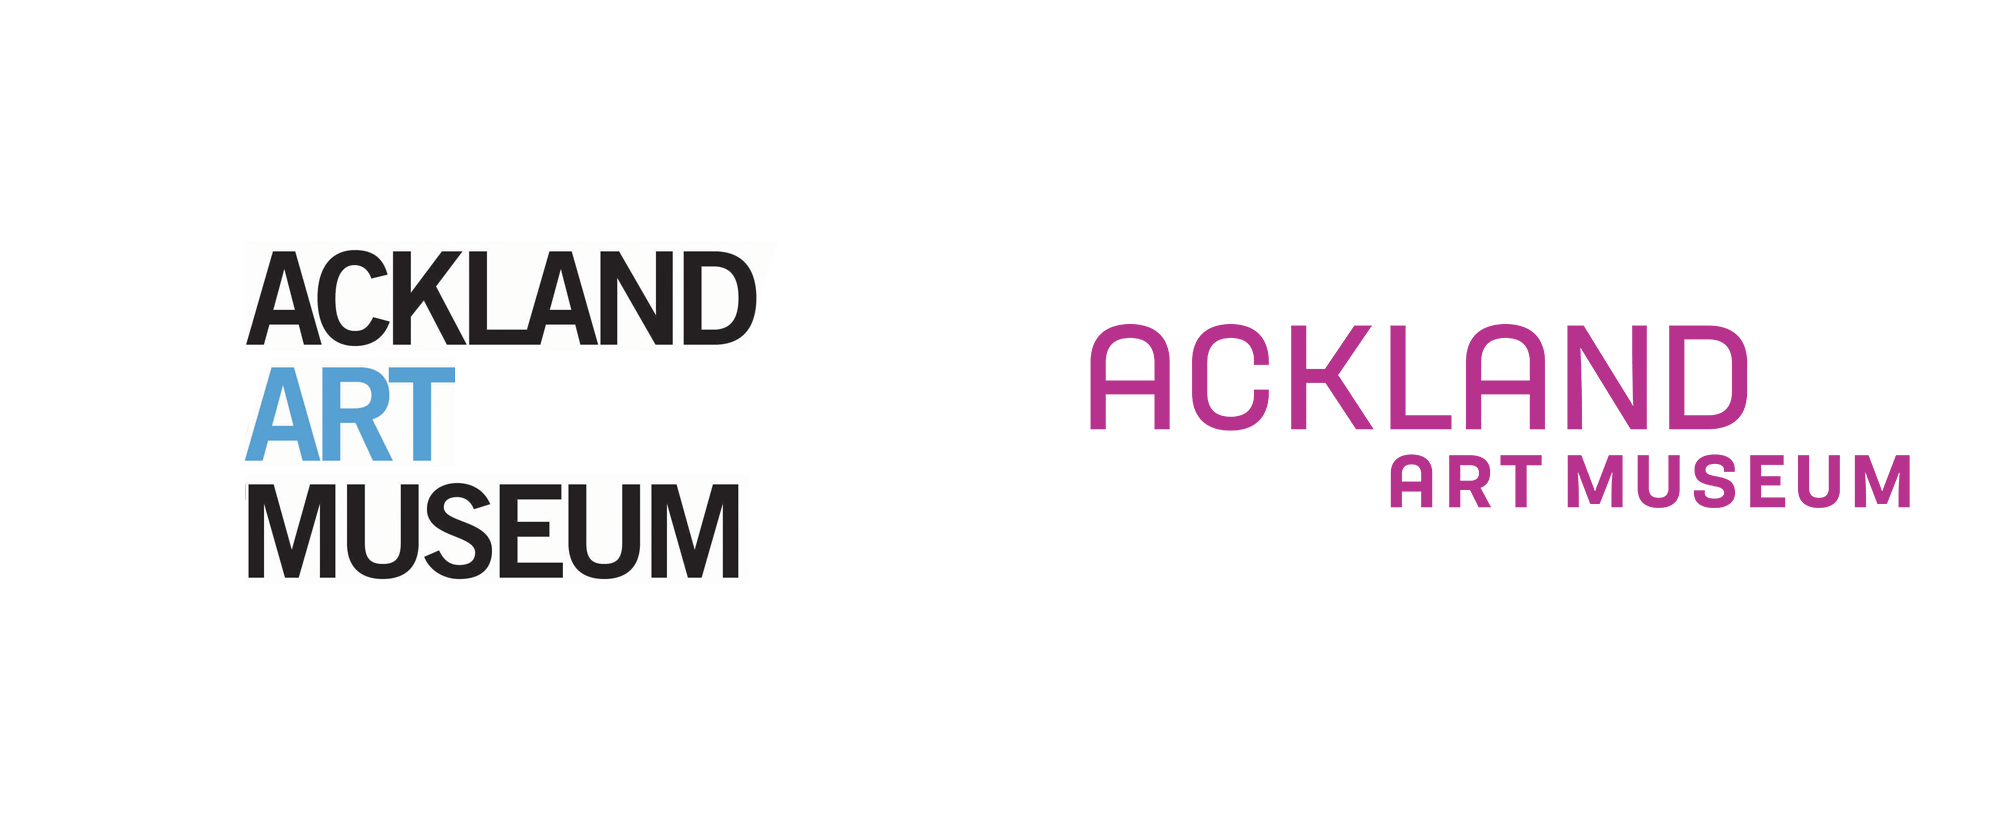 New Logo and Identity for Ackland Art Museum by Minelli